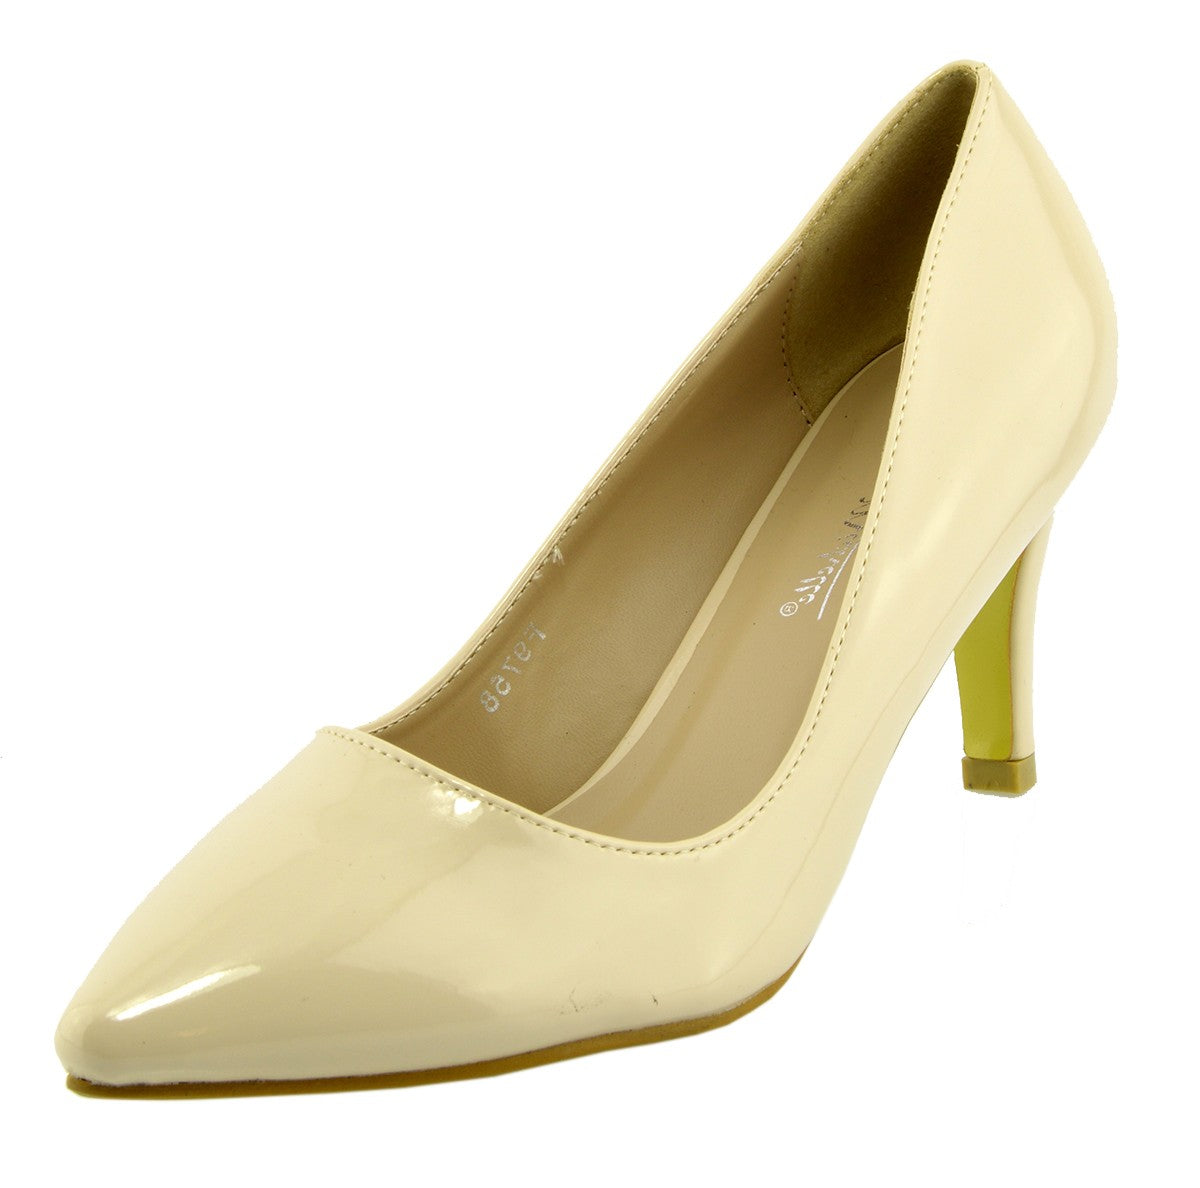 0f94e38766ddb Womens court shoes Ladies smart mid high heel work office formal shoes -  Nude